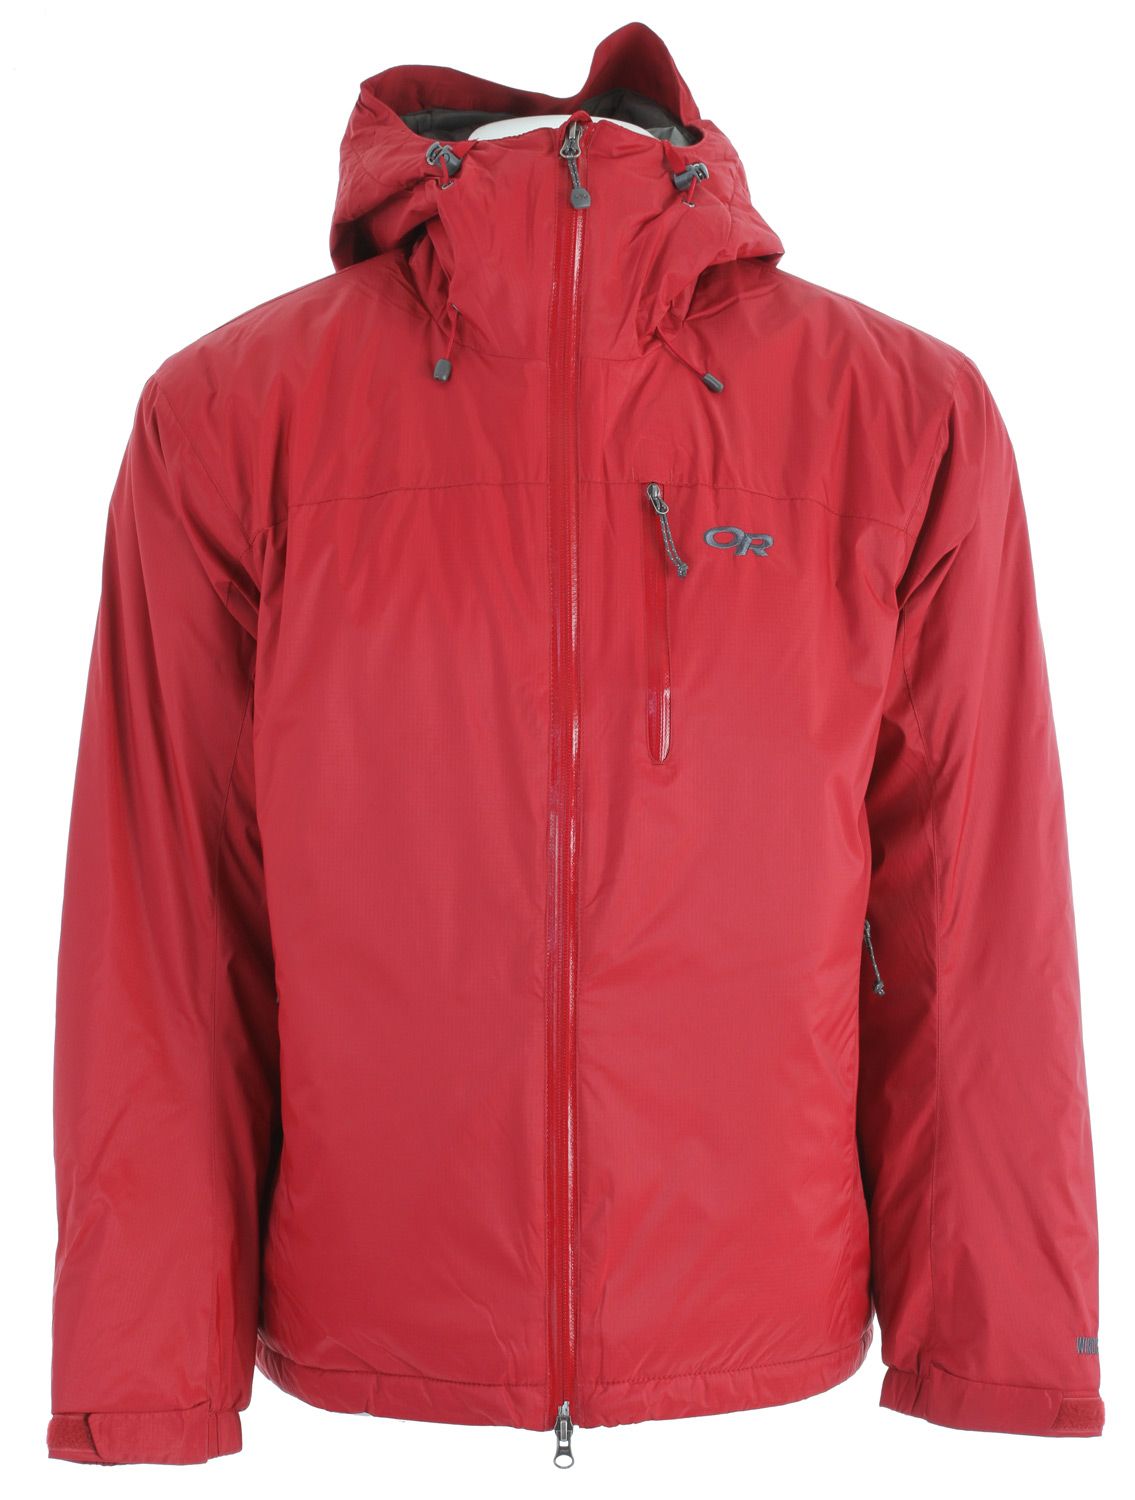 Ski A mountain guide favorite for very cold, damp, and high wind conditions, the Outdoor Research Chaos Insulated Jacket is an OR classic that returns with updated features for greater functionality as the ultimate alpine, ice, and backcountry ski parka.Key Features of the Outdoor Research Chaos Insulated Jacket: Highly weather-resistant/breathable WINDSTOPPER shell fabric; quilted taffeta lining PrimaLoft ECO insulation; 133g body, 100g sleeves, 60g hood Fully adjustable hood fits over a helmet Water-resistant zippers Double-sliding front zipper with internal stormflap Zippered napoleon pocket; zippered internal chest pocket with media port Two zippered handwarmer pockets Two internal Shove-It pockets with drawcord closure Elastic cuffs with hook/loop tabs Dual drawcord hem adjustments - $189.95